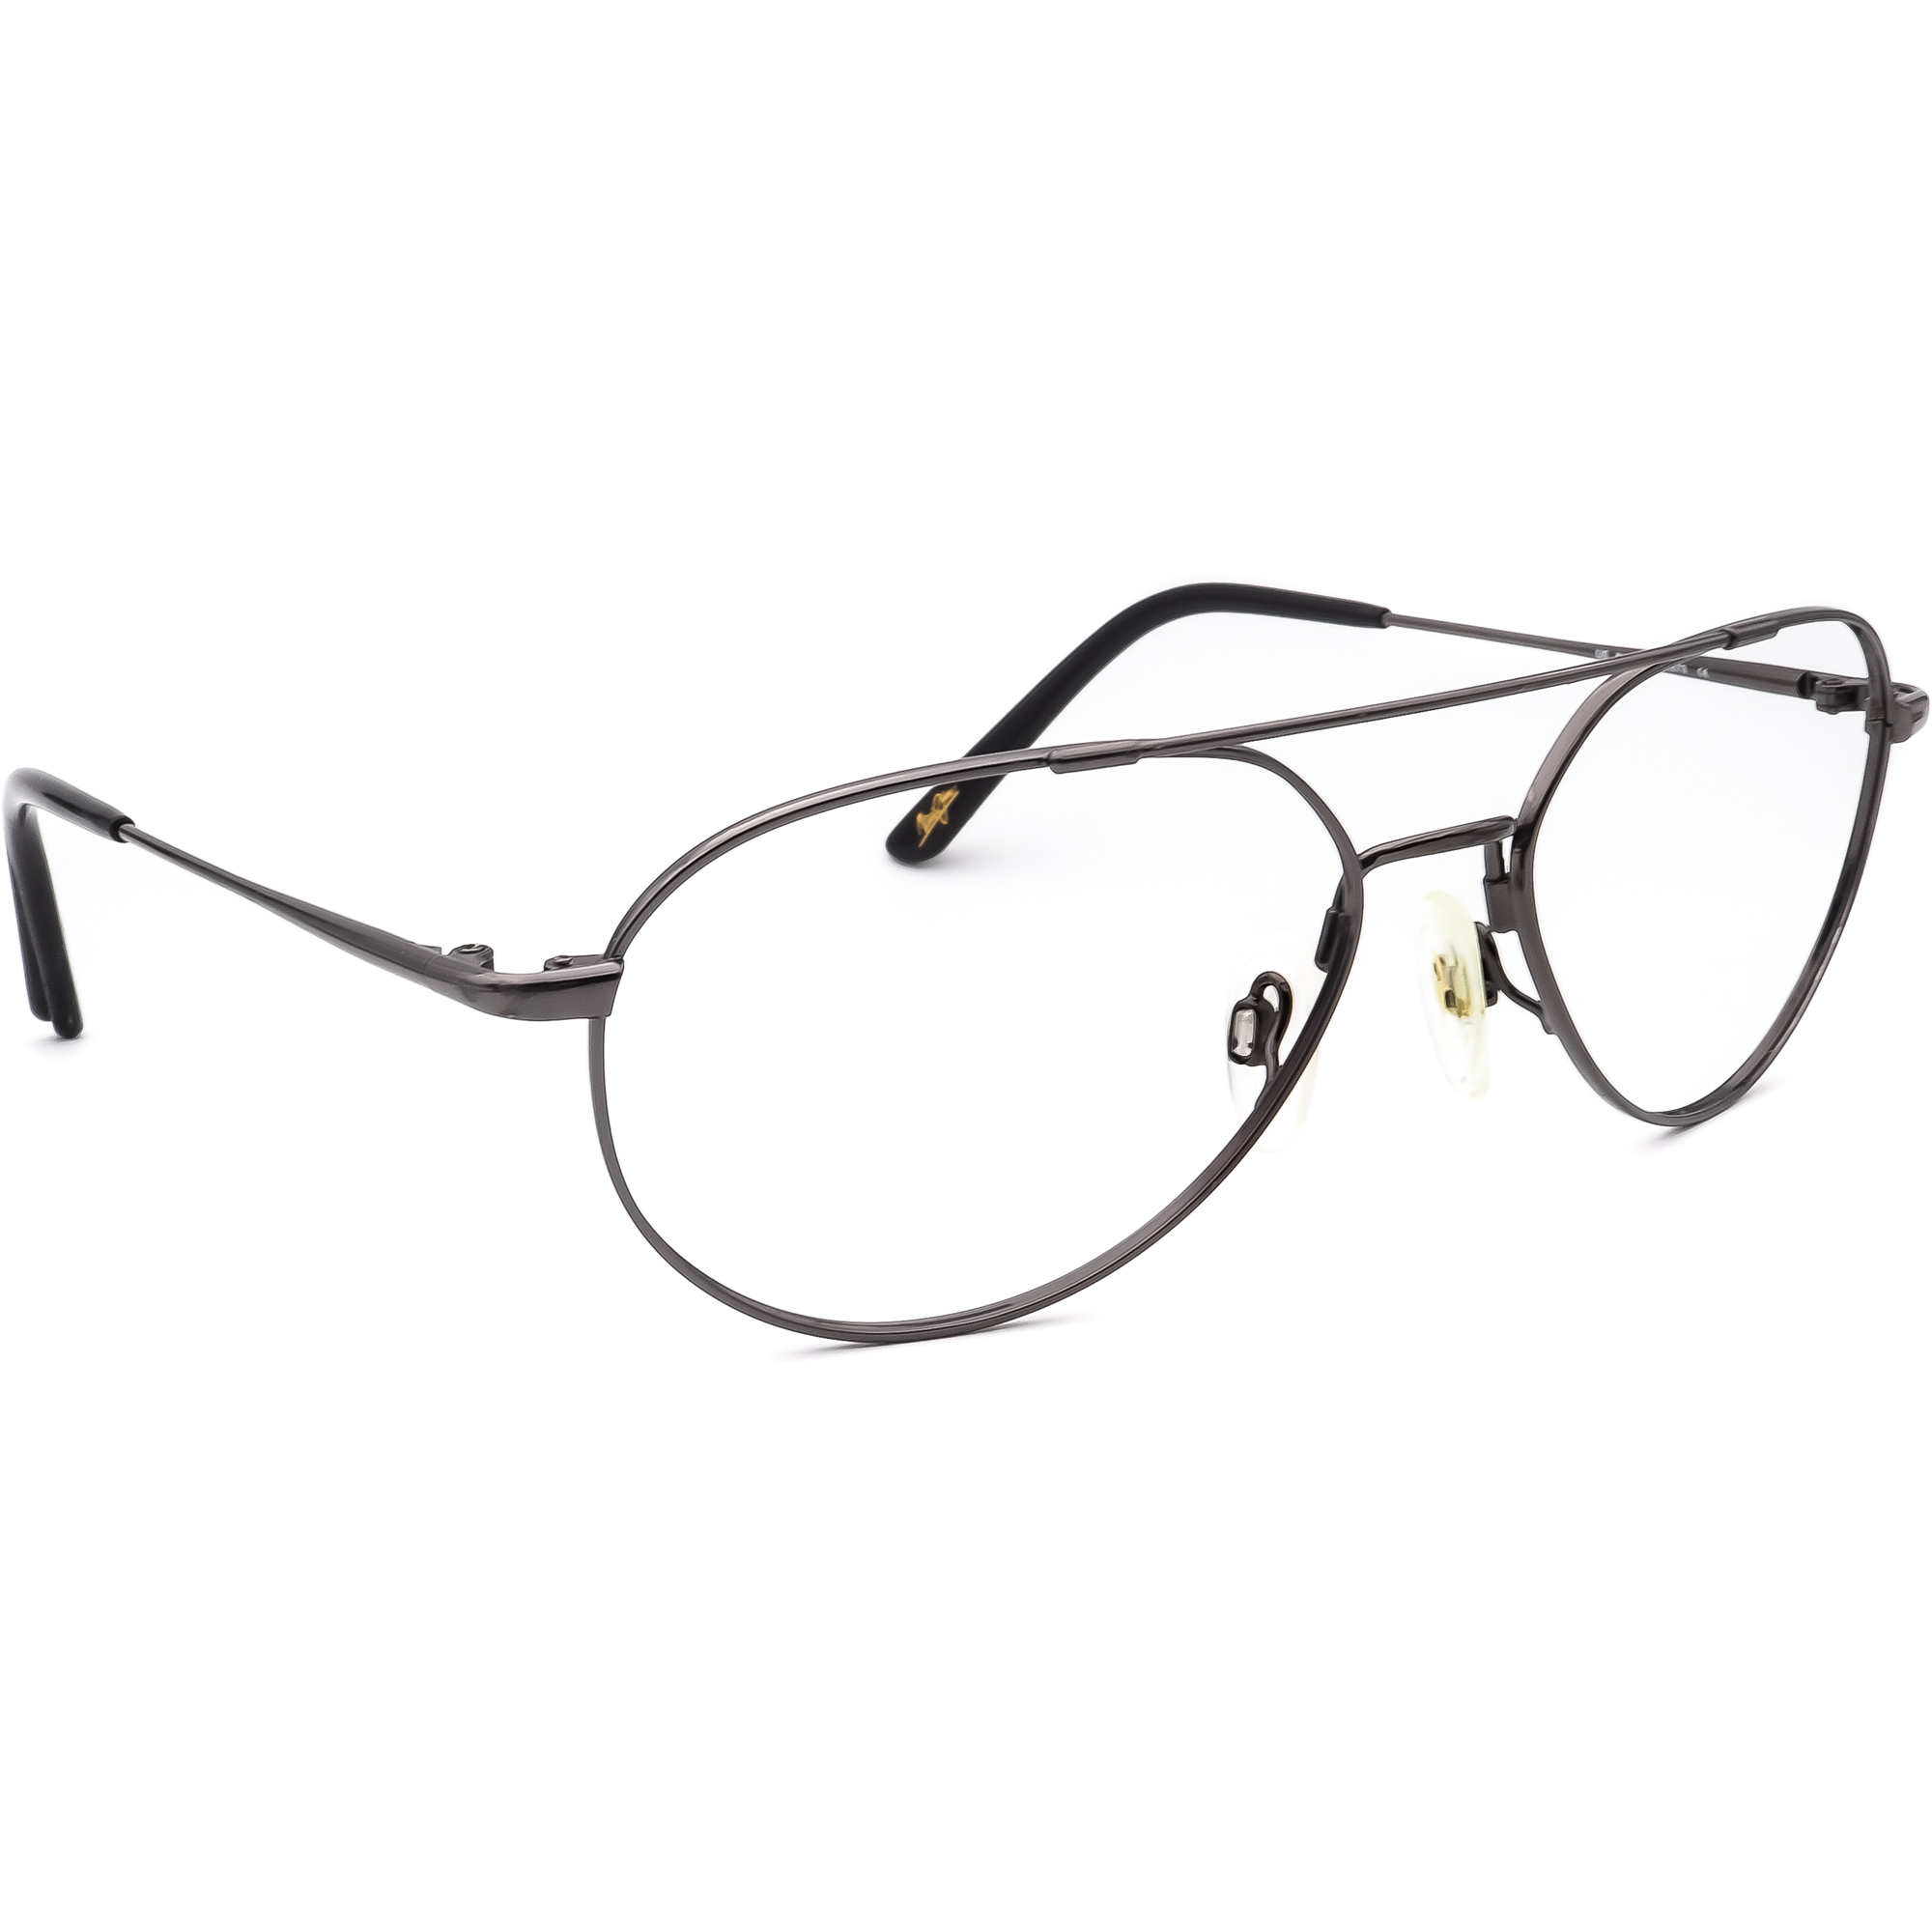 Maui Jim MJ-306-02 Flexon Sunglasses Frame Only